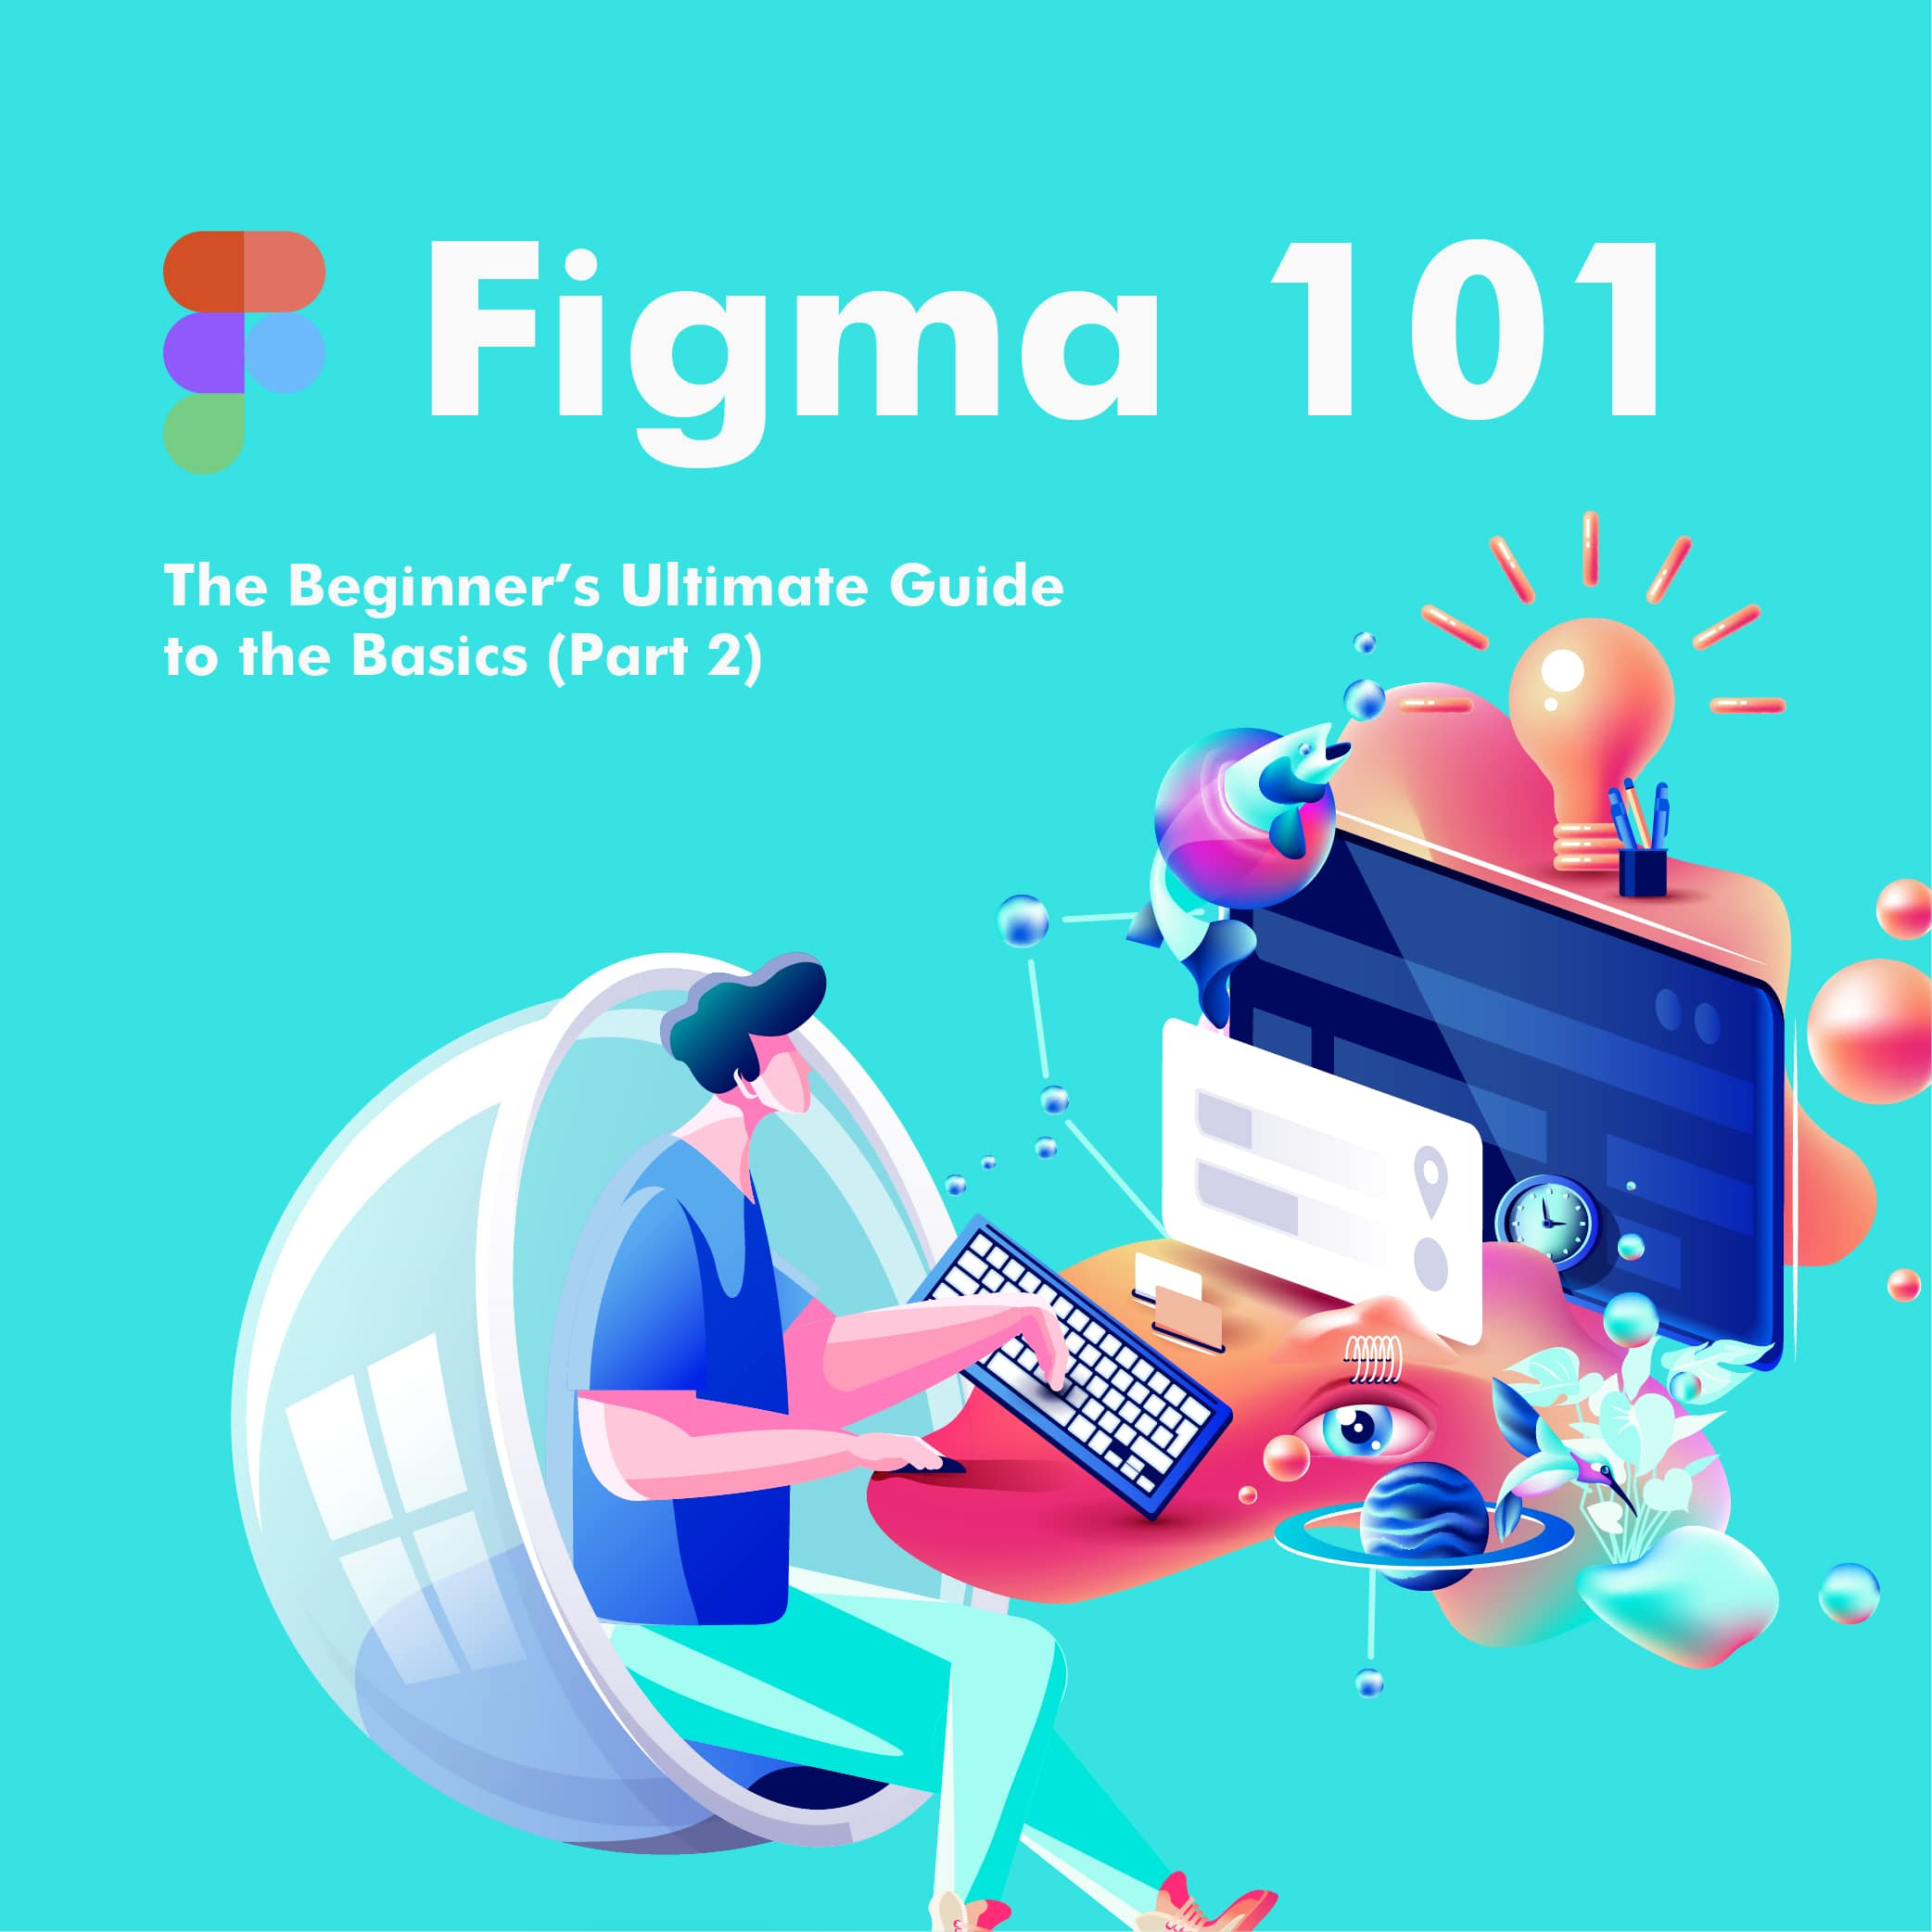 52510Figma 101 – The Beginner's Ultimate Guide to the Basics (Part 2)